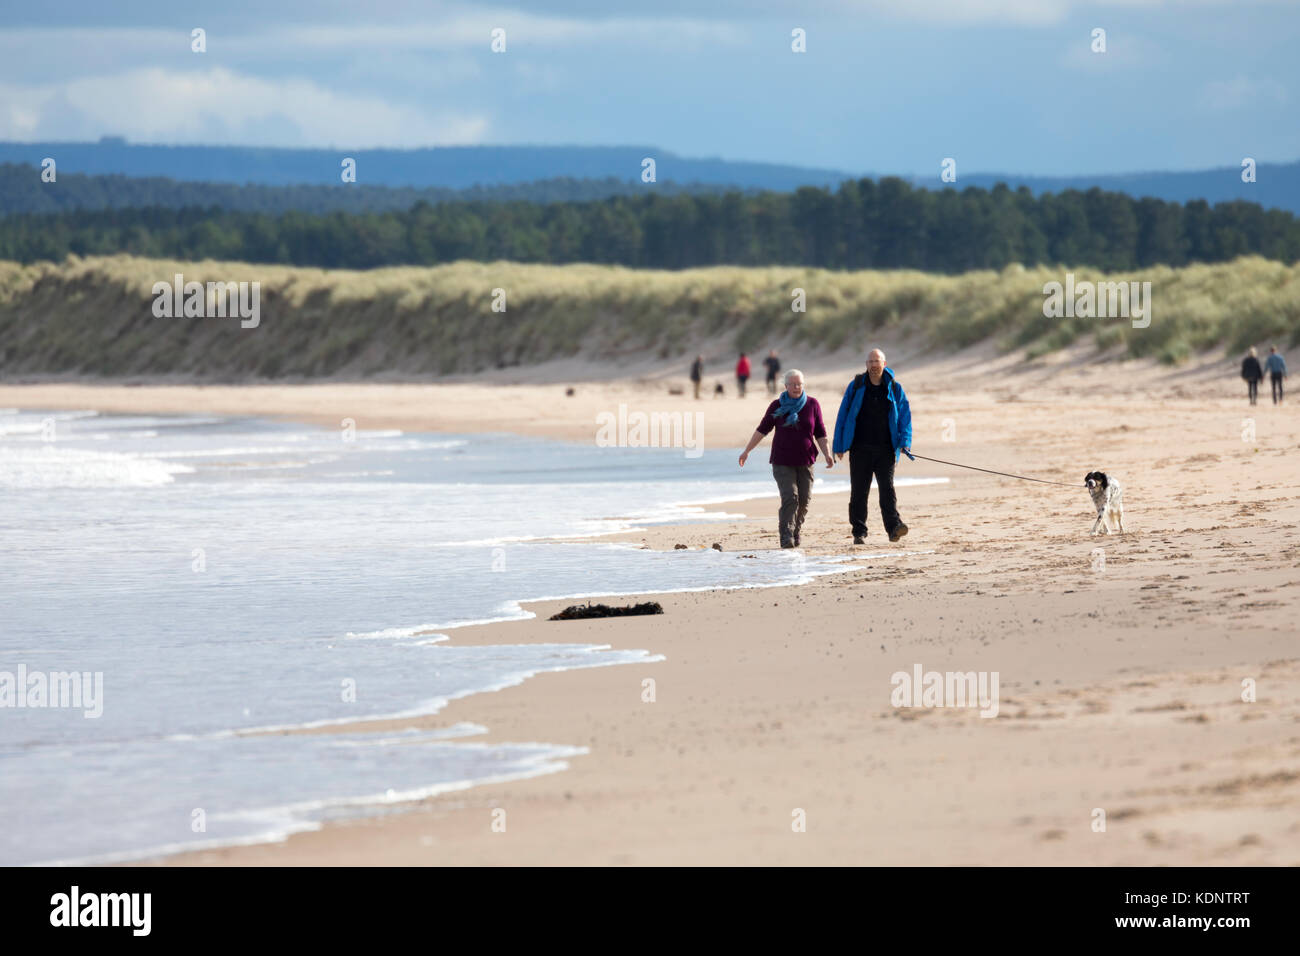 Walkers enjoying autumn sunshine on the sandy beach on the picturesque seaside resort town of Lossiemouth, Scotland - Stock Image